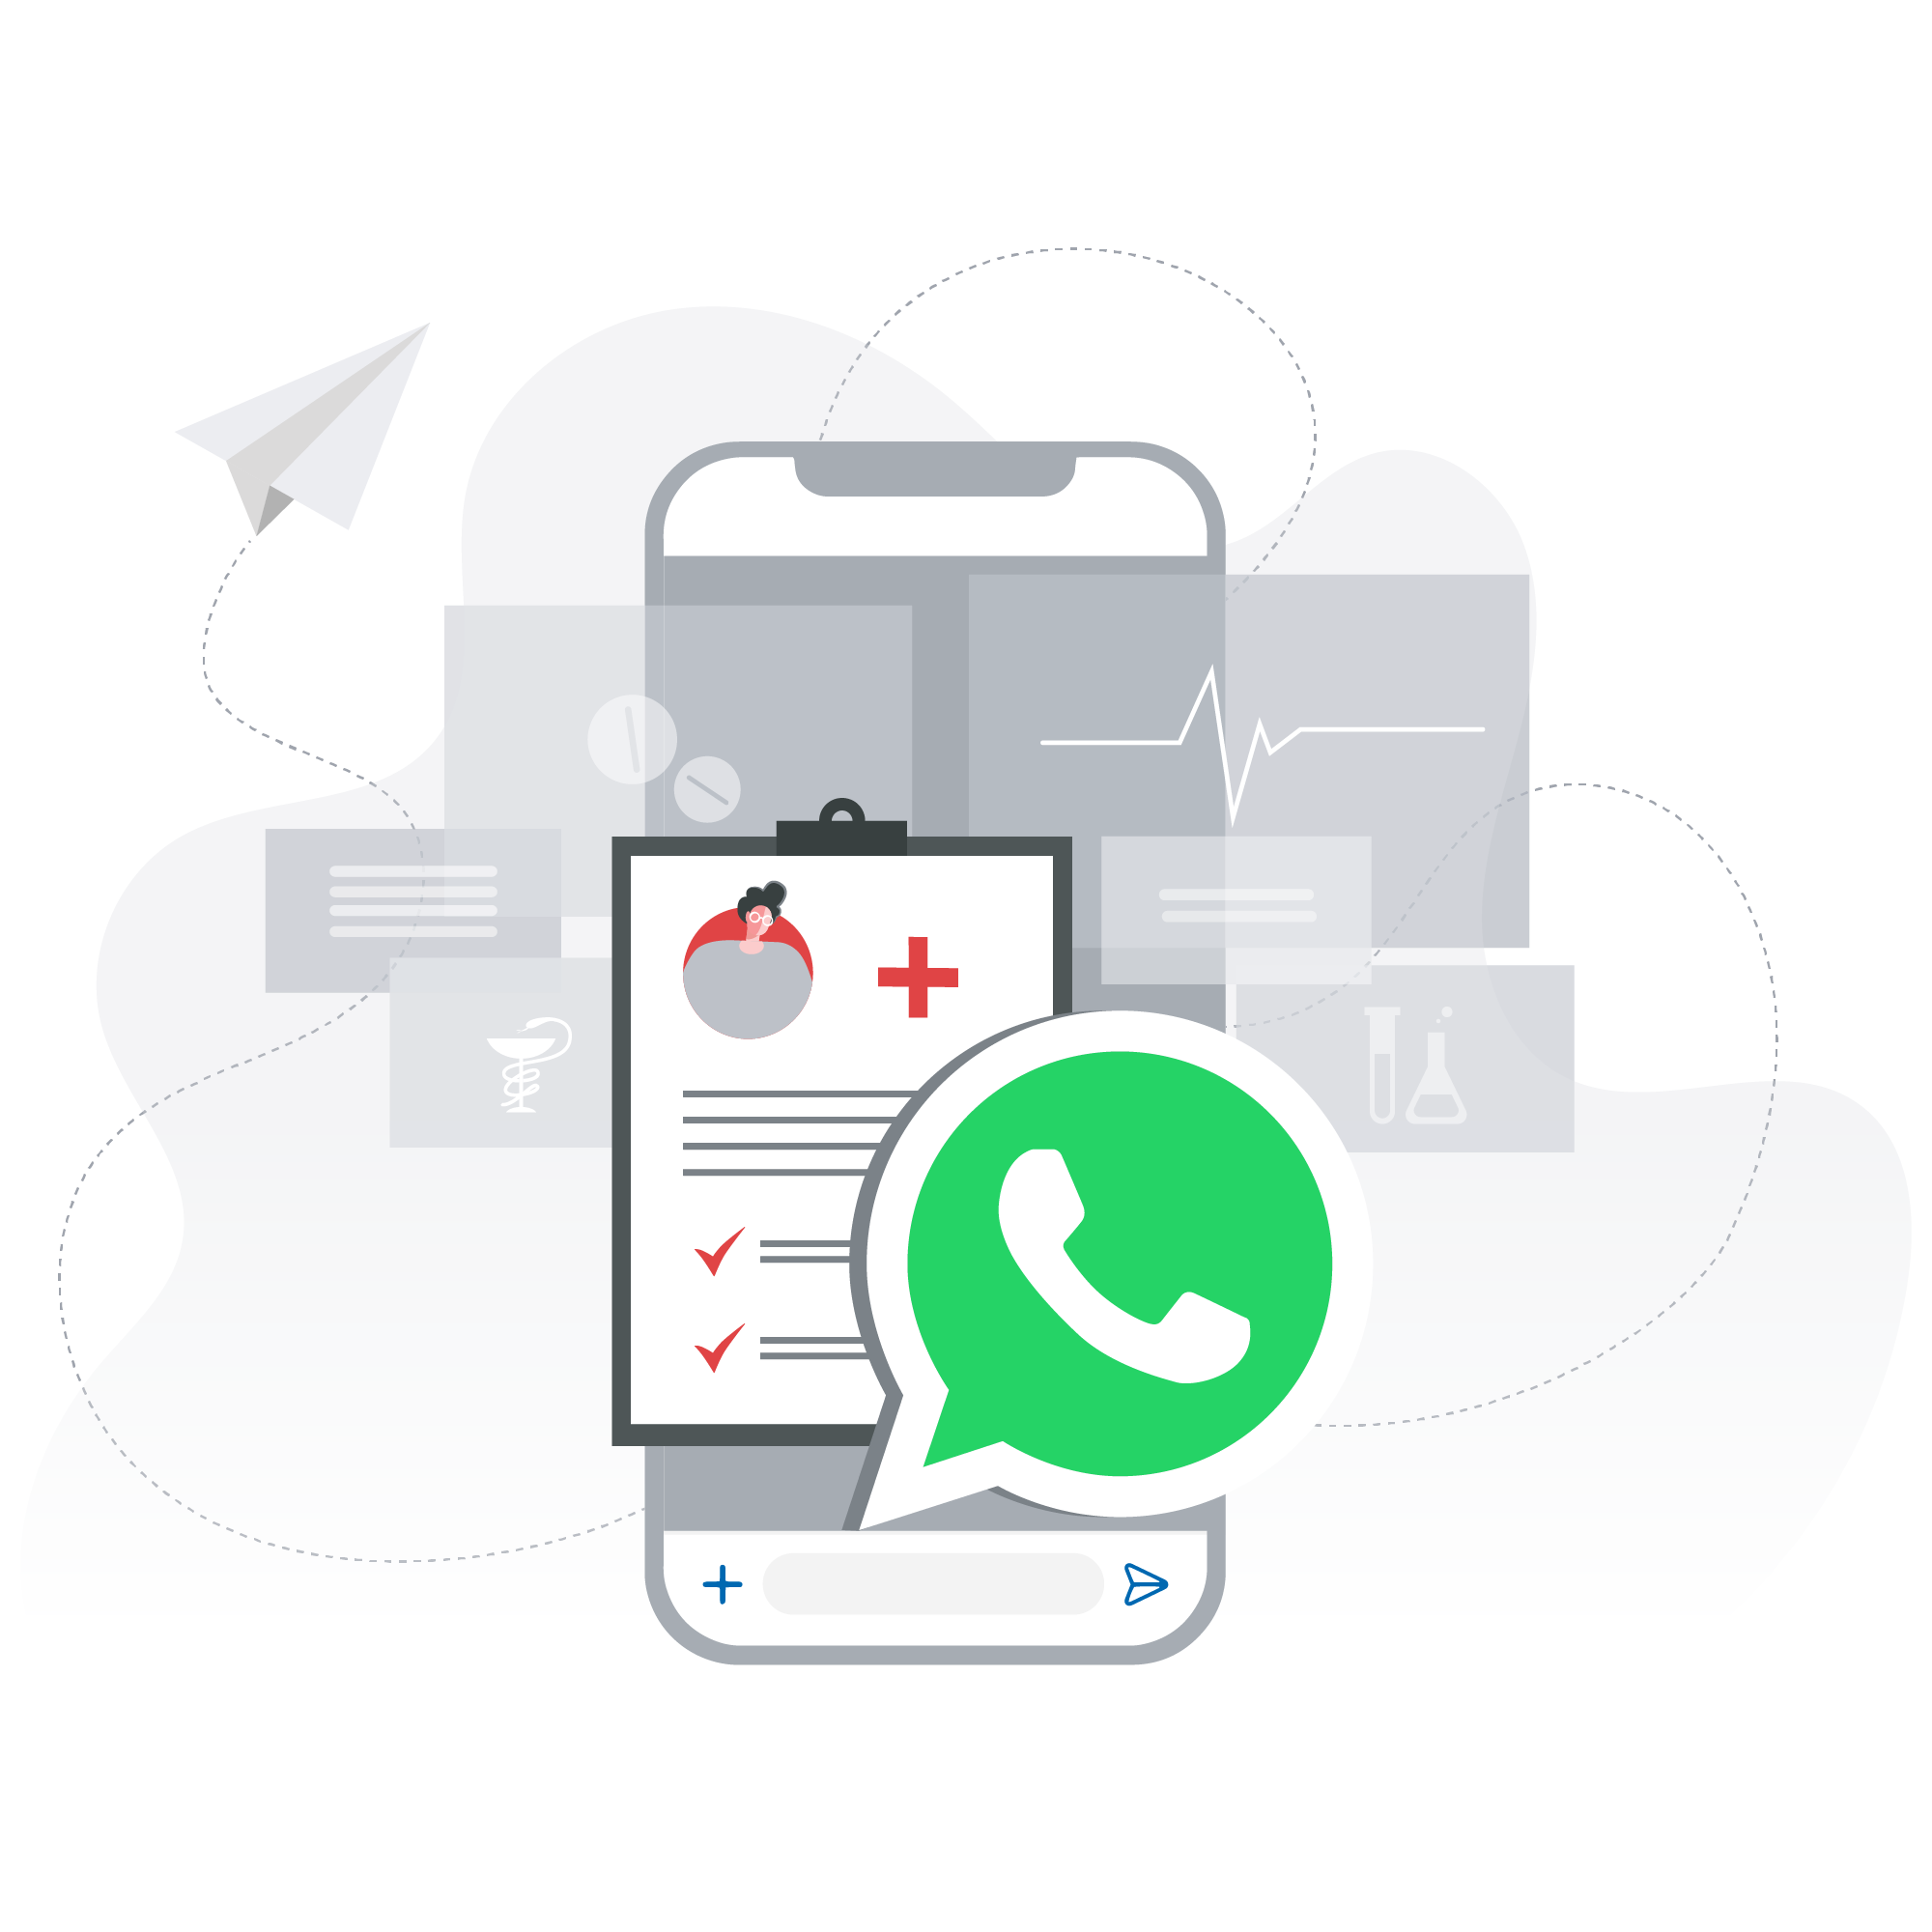 5 WhatsApp Business Use Cases for Healthcare